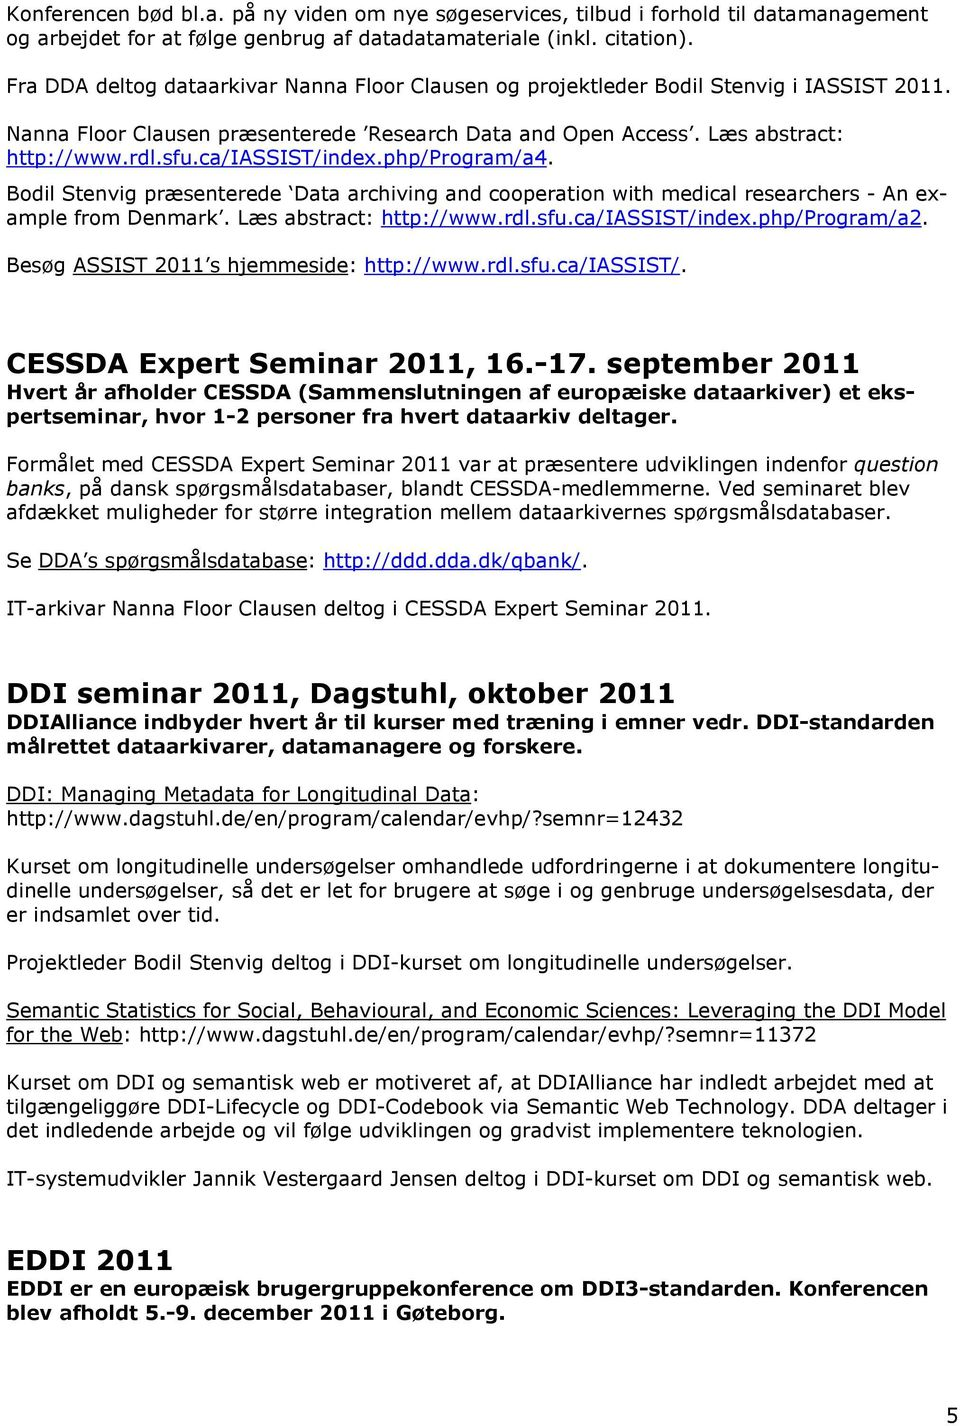 ca/iassist/index.php/program/a4. Bodil Stenvig præsenterede Data archiving and cooperation with medical researchers - An example from Denmark. Læs abstract: http://www.rdl.sfu.ca/iassist/index.php/program/a2.